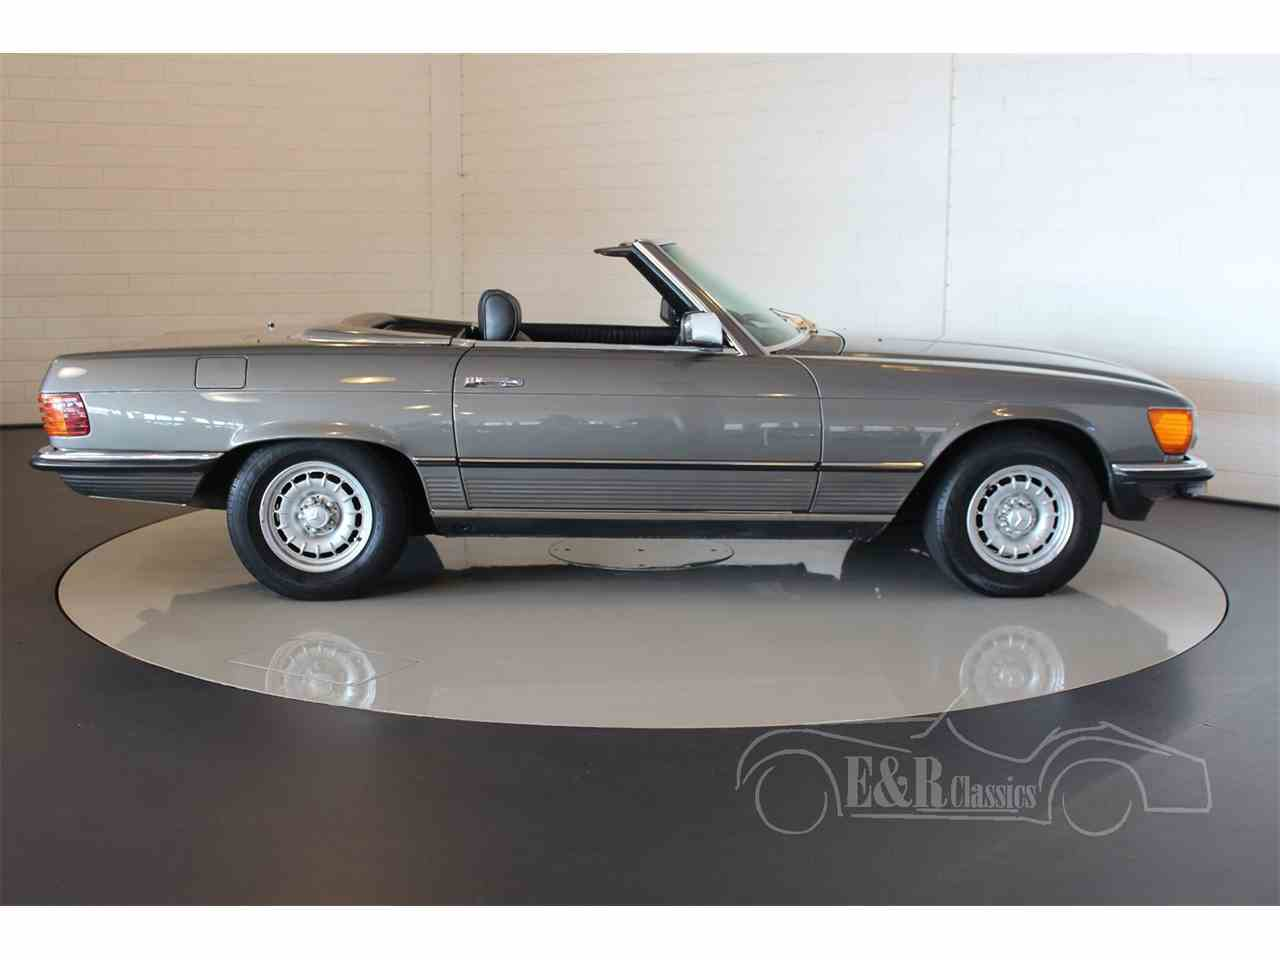 Large Picture of 1980 Mercedes-Benz SL-Class located in Noord Brabant - $34,900.00 - MA0P